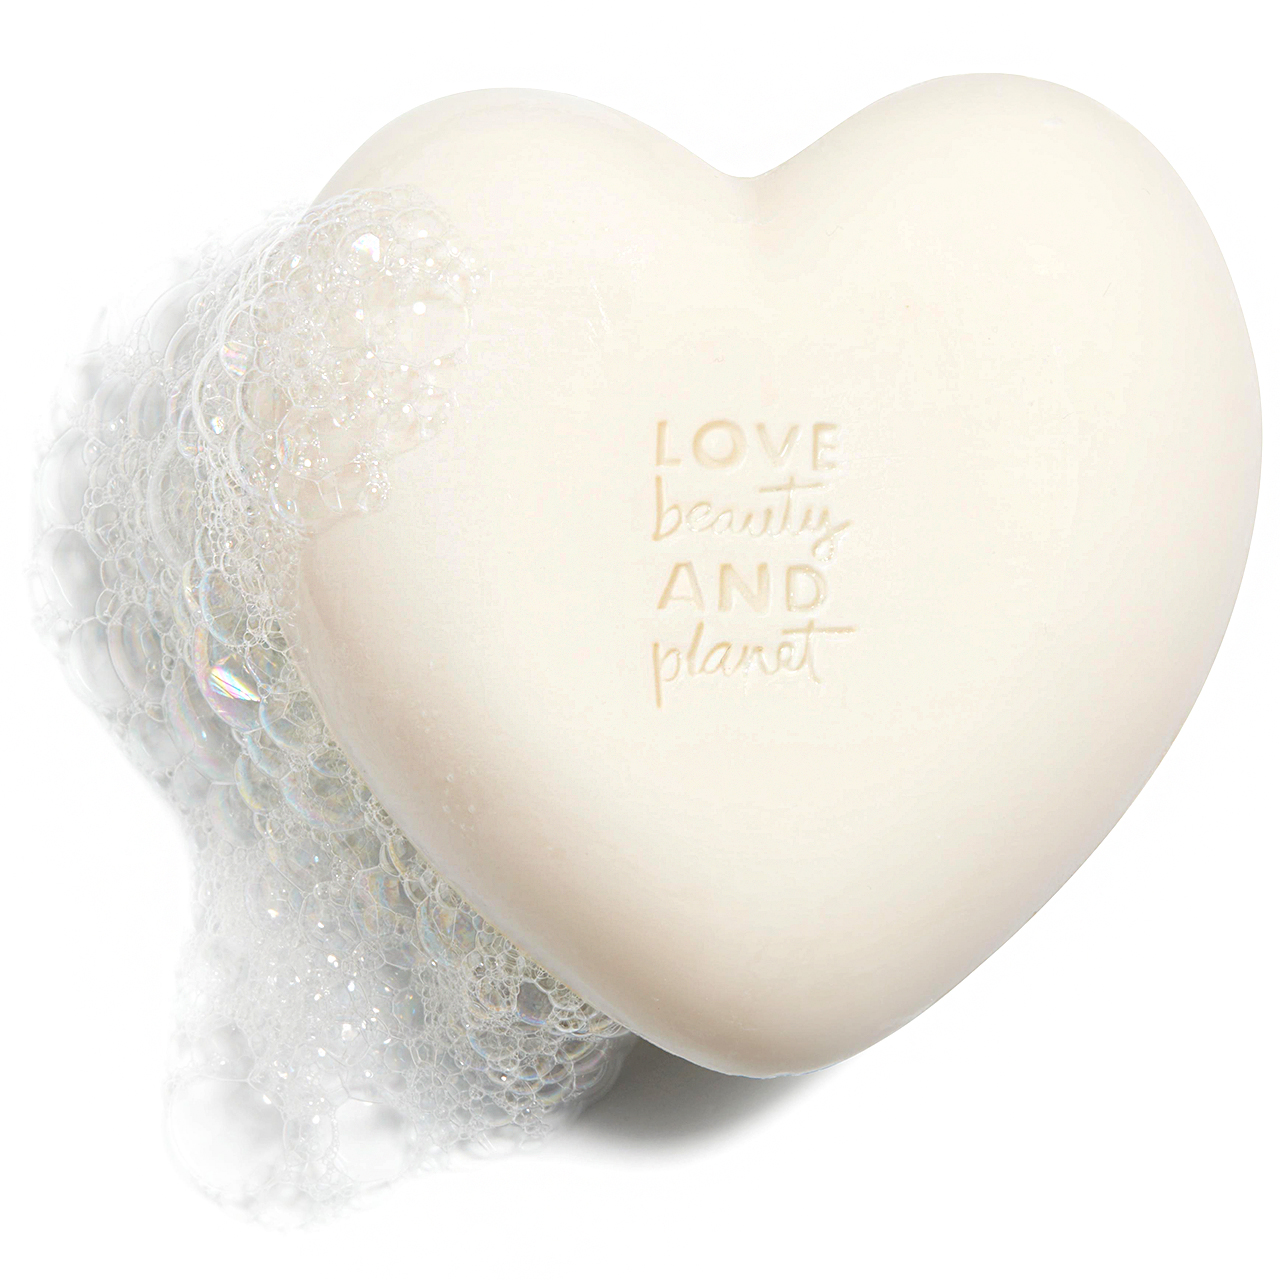 Love Beauty and Planet Shampoo & Conditioner Bar